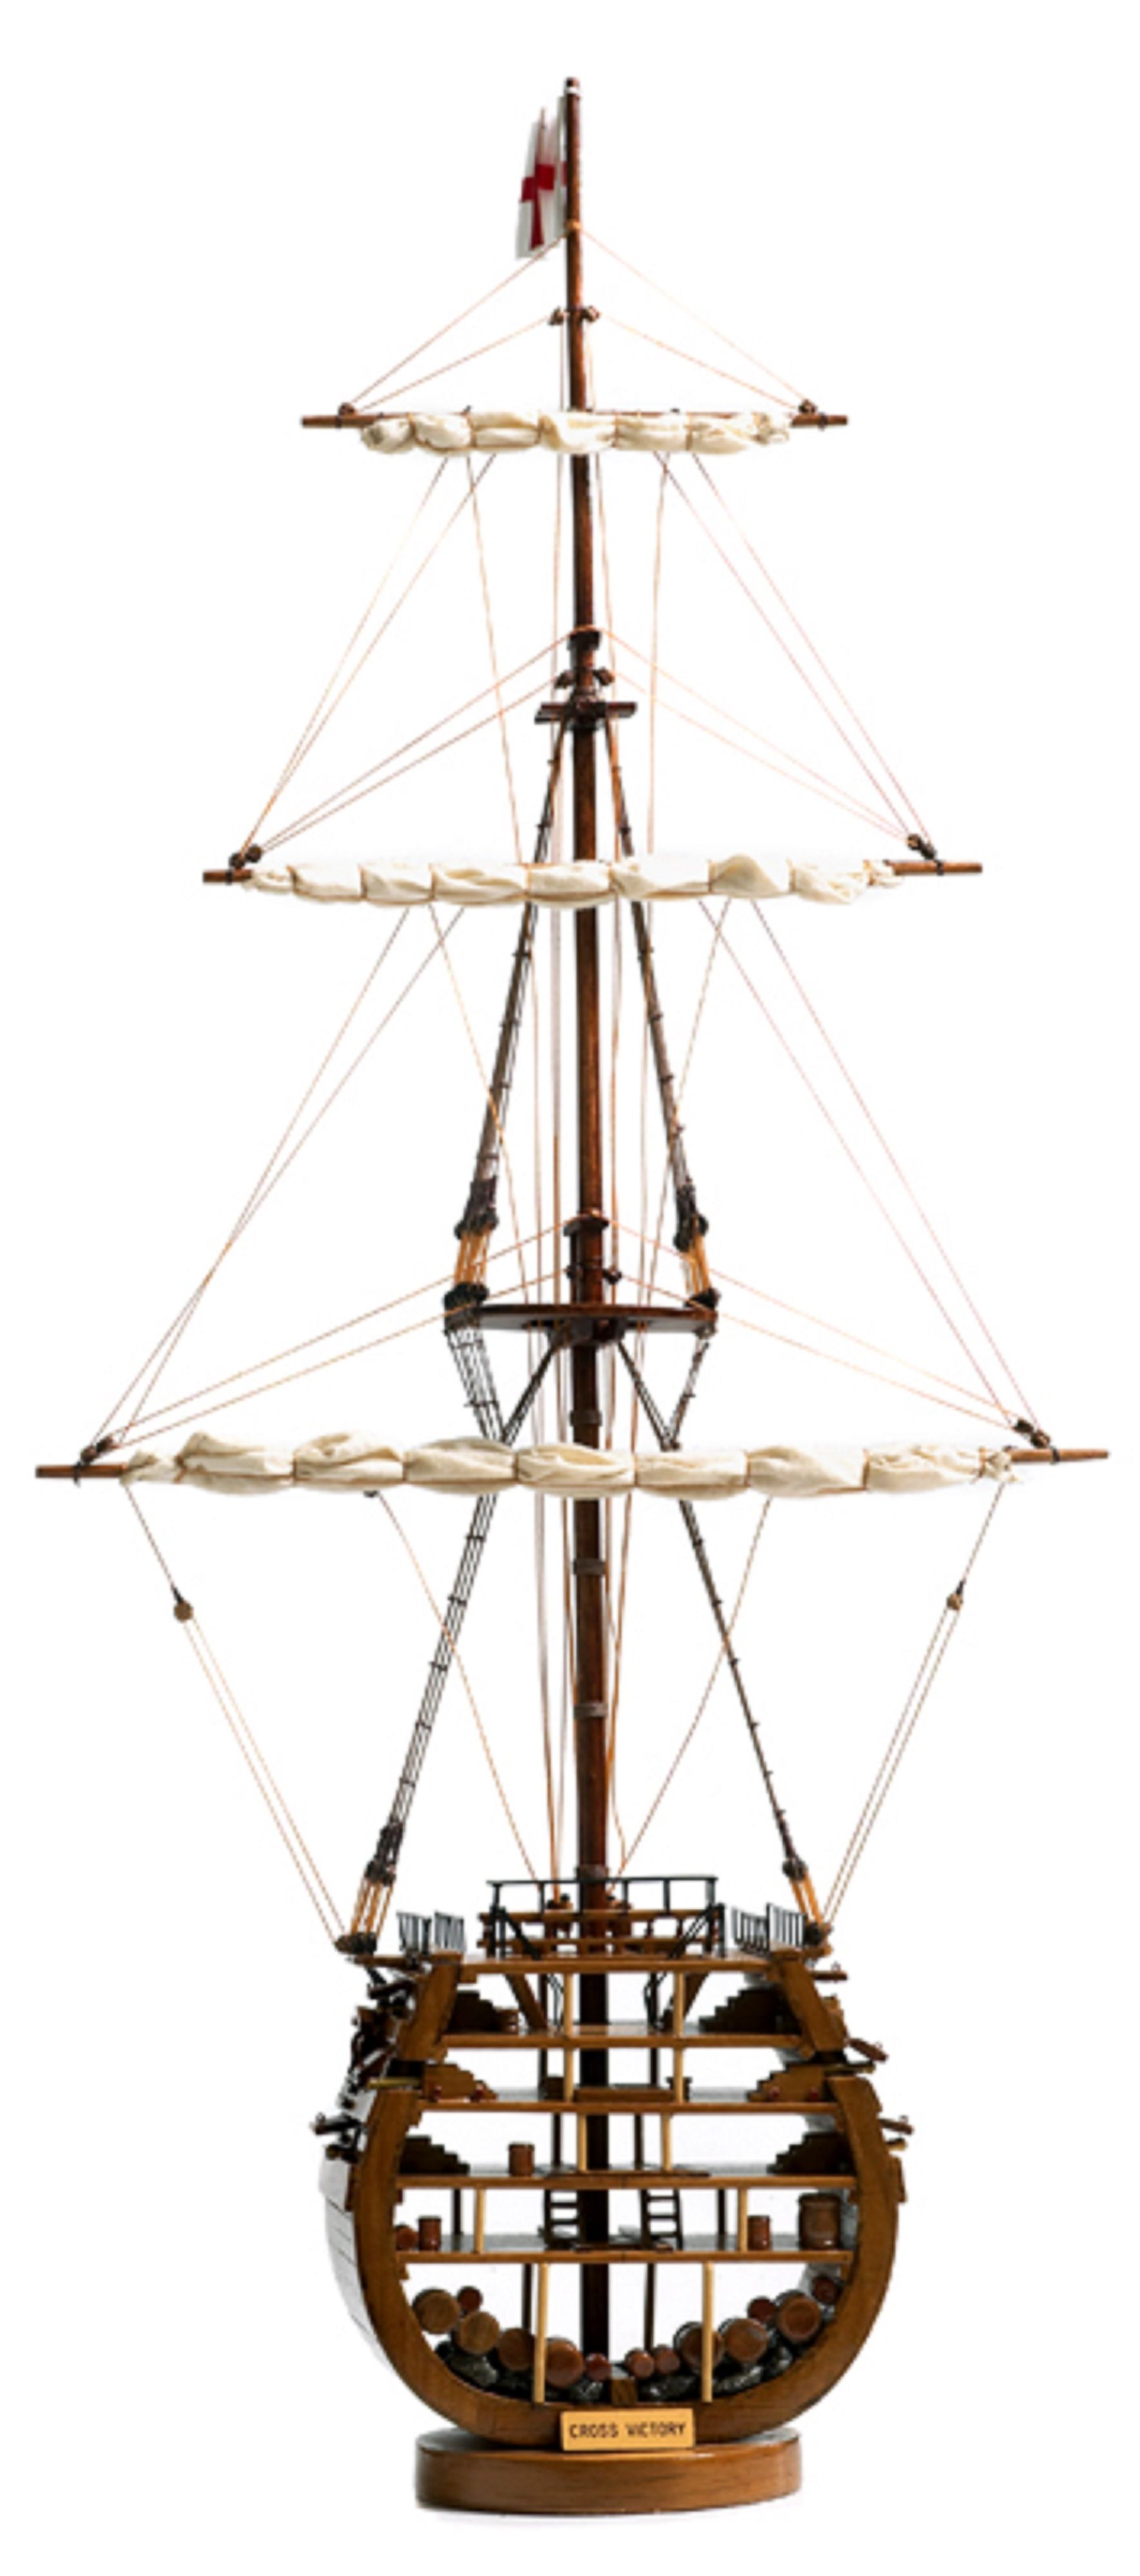 HMS Victory Cross Section Model Ship  (Superior Range) - PSM